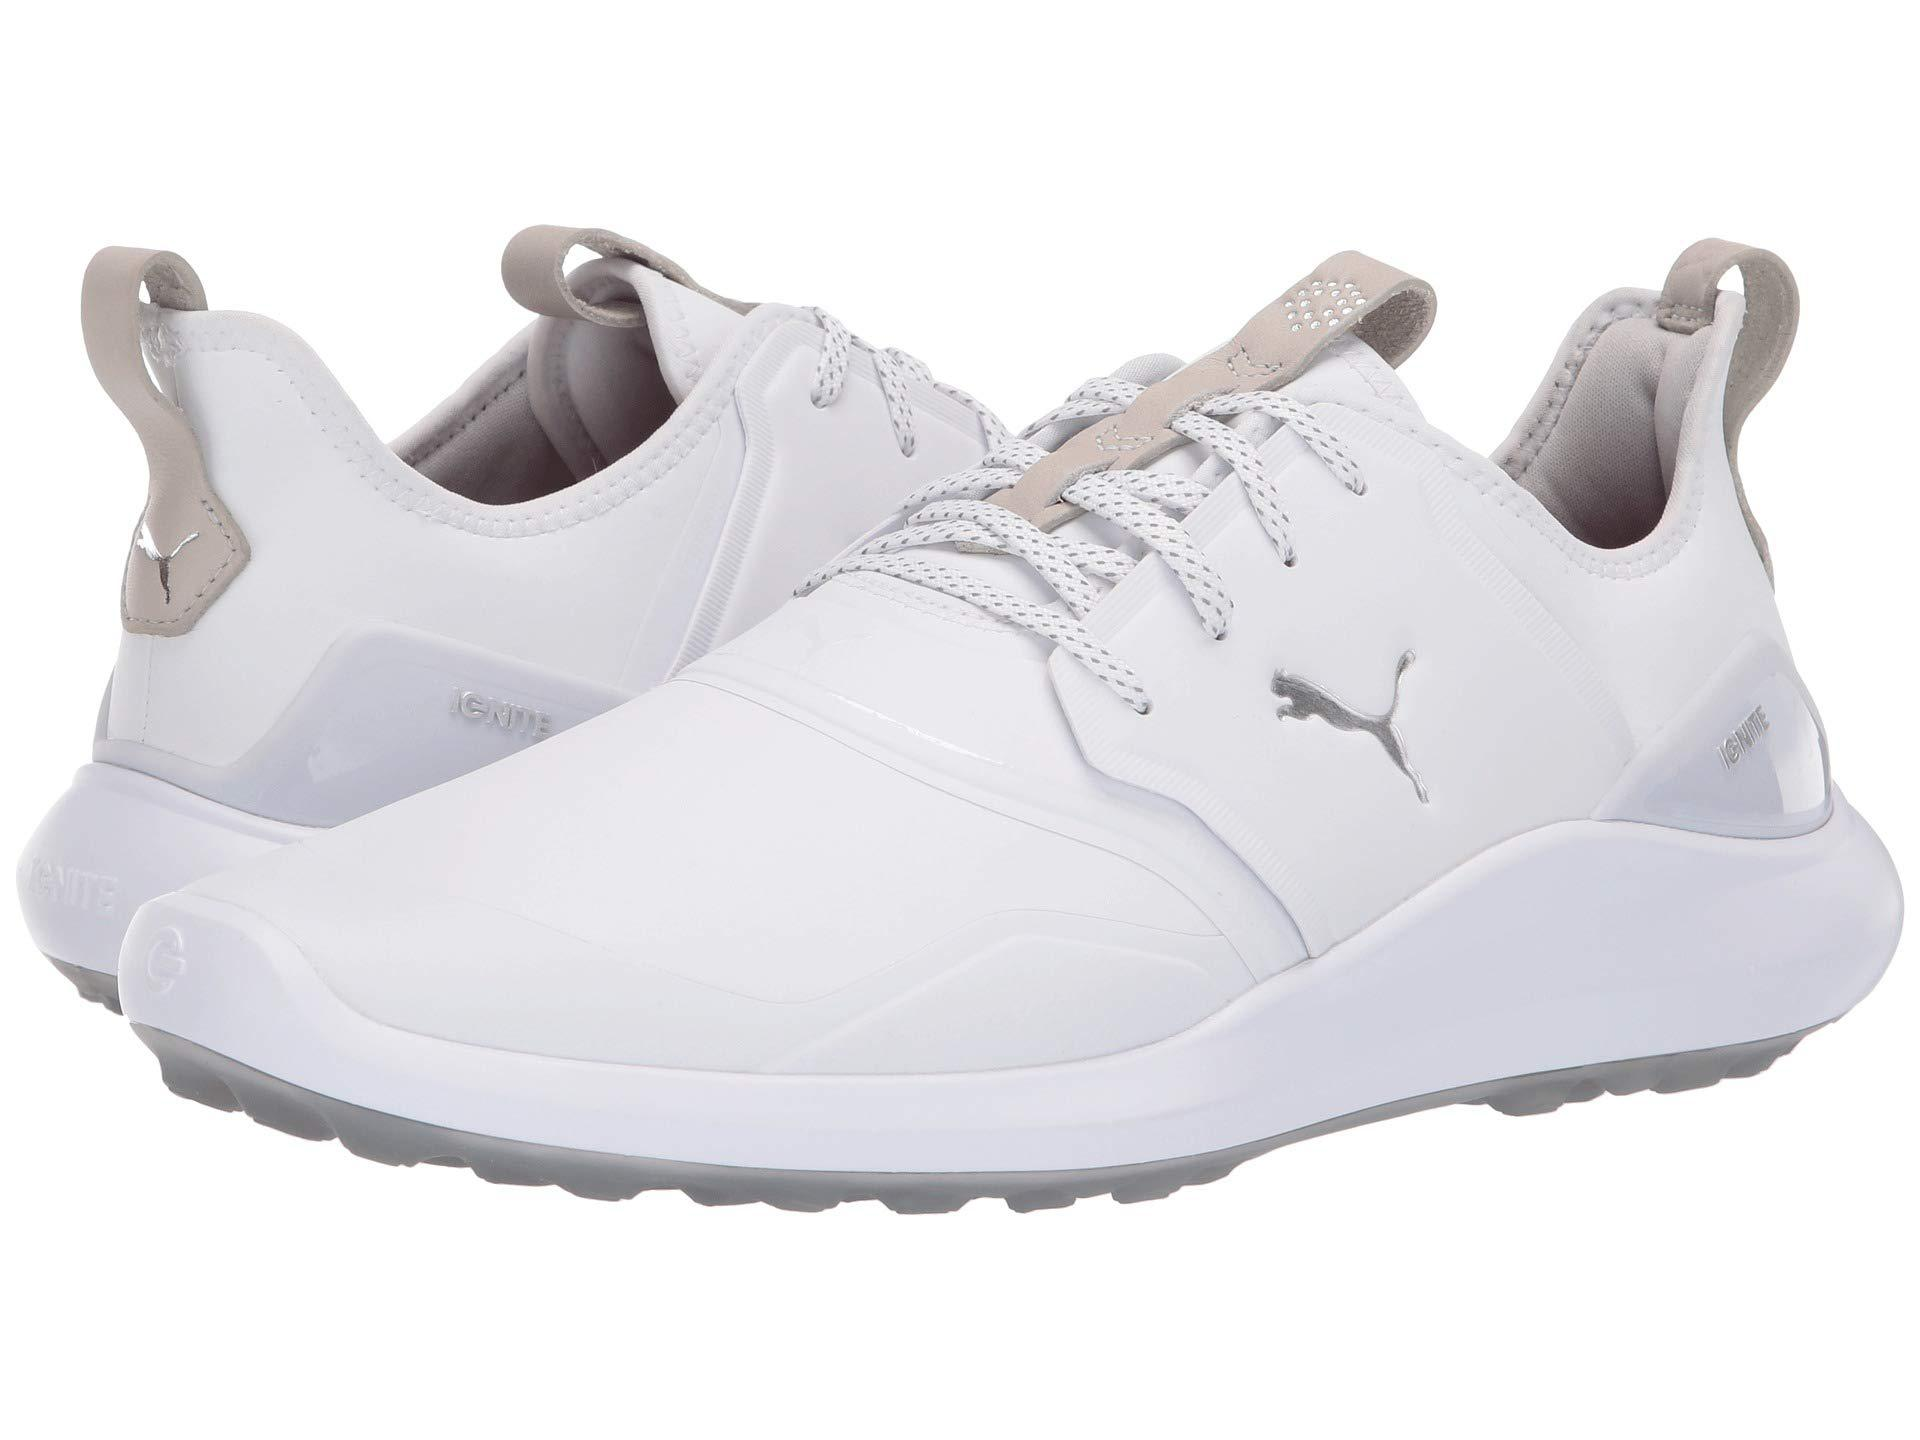 72b772f897d761 Lyst - PUMA Ignite Nxt Pro Golf Shoe in White for Men